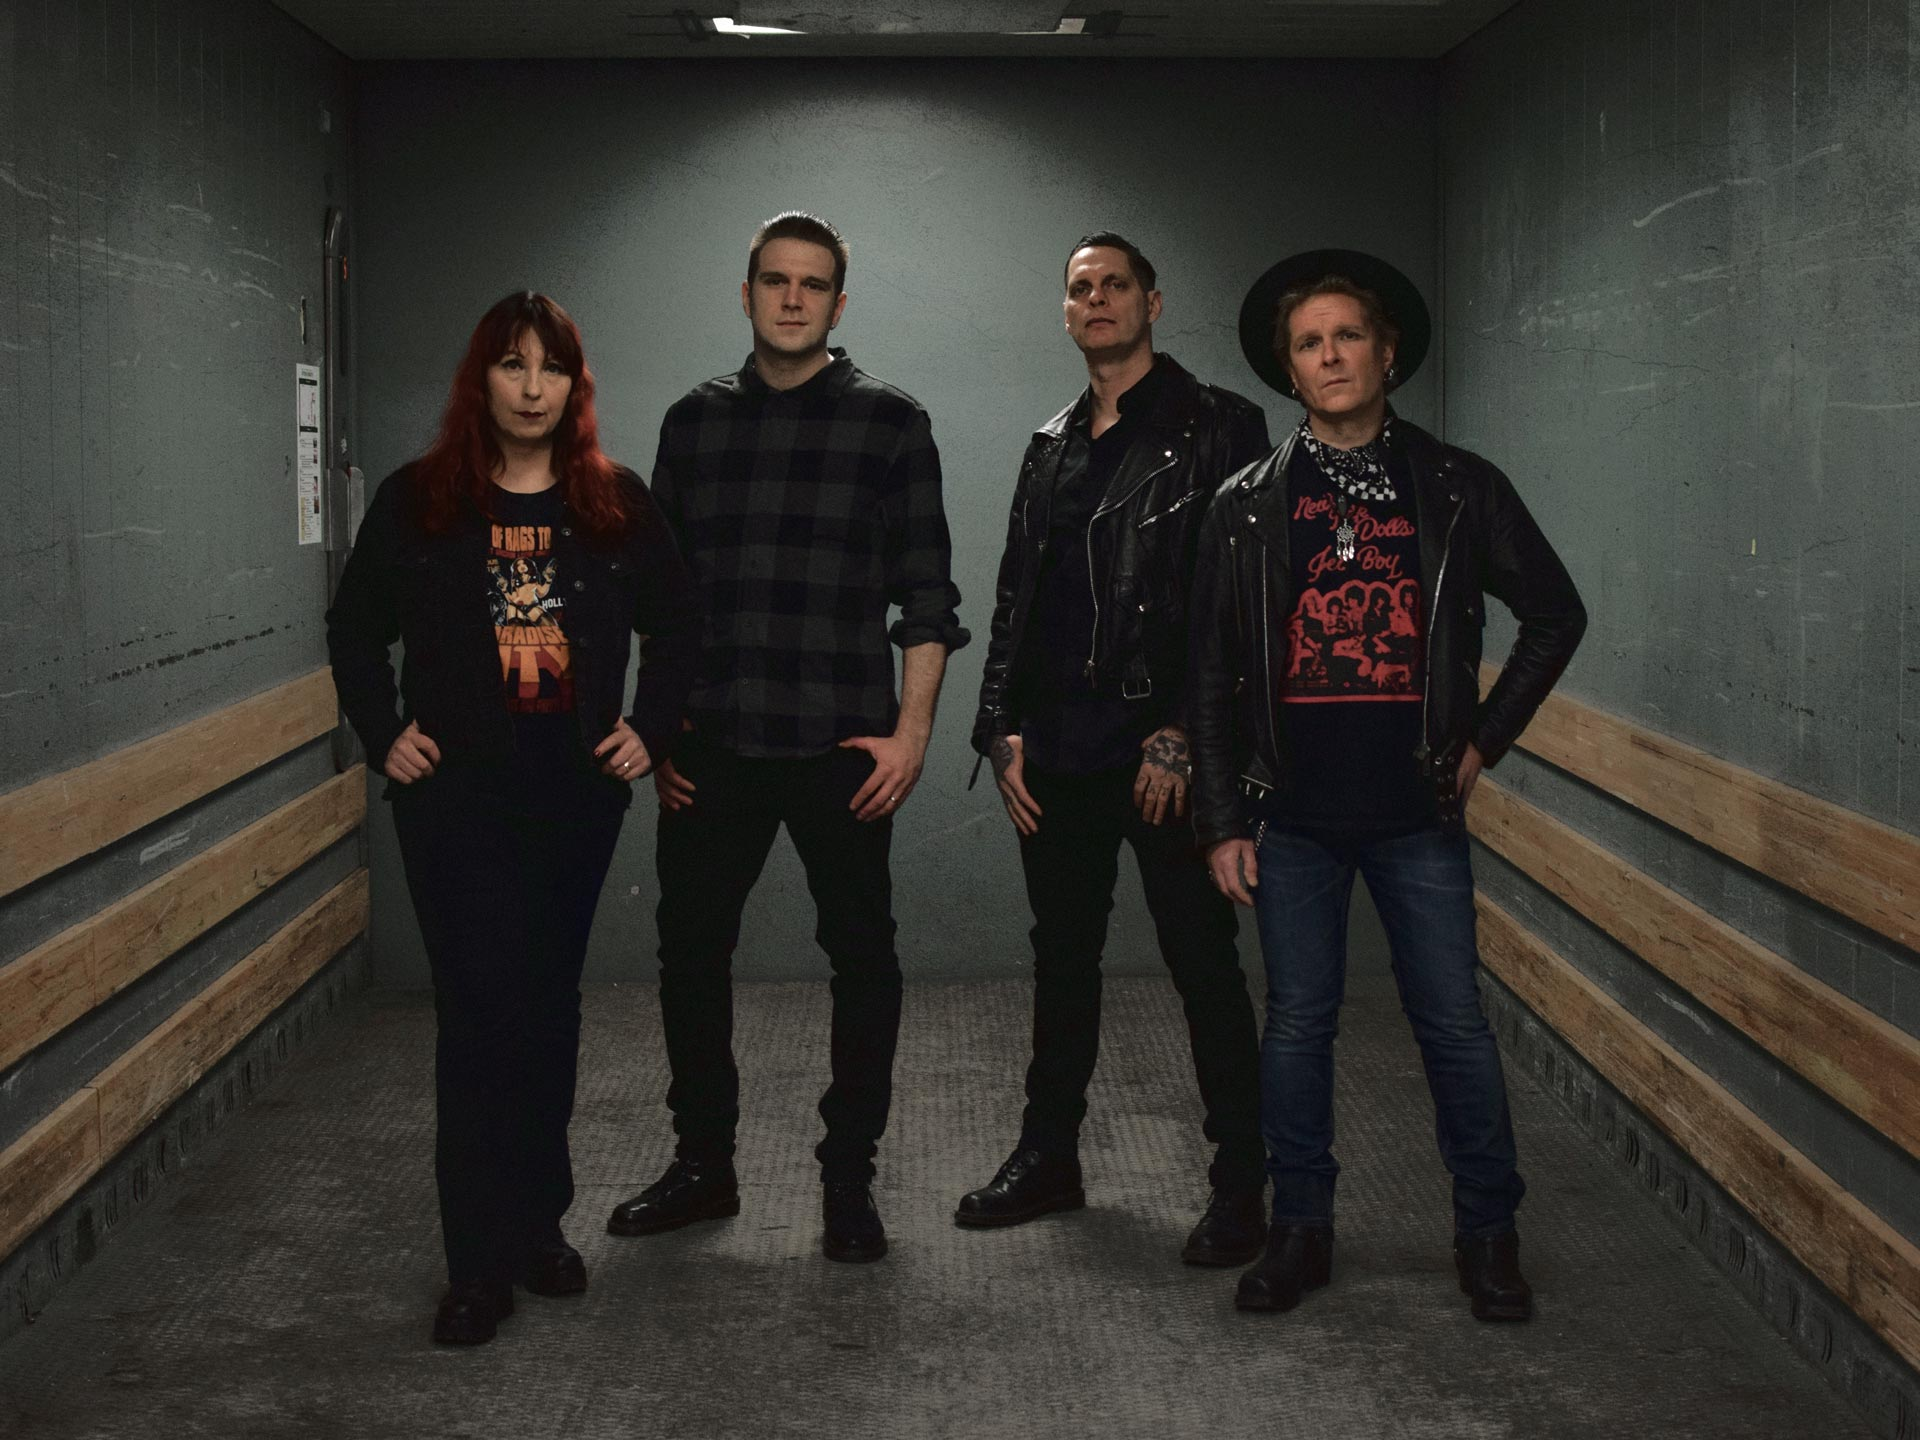 Daggerplay: Sirpa Immonen (Drums), Tommi Luostarinen (Guitar, vocals), Bryan Ugartechea (Bass, backing vocals) & Pekko Mantzin (Lead Vocals, Guitar)